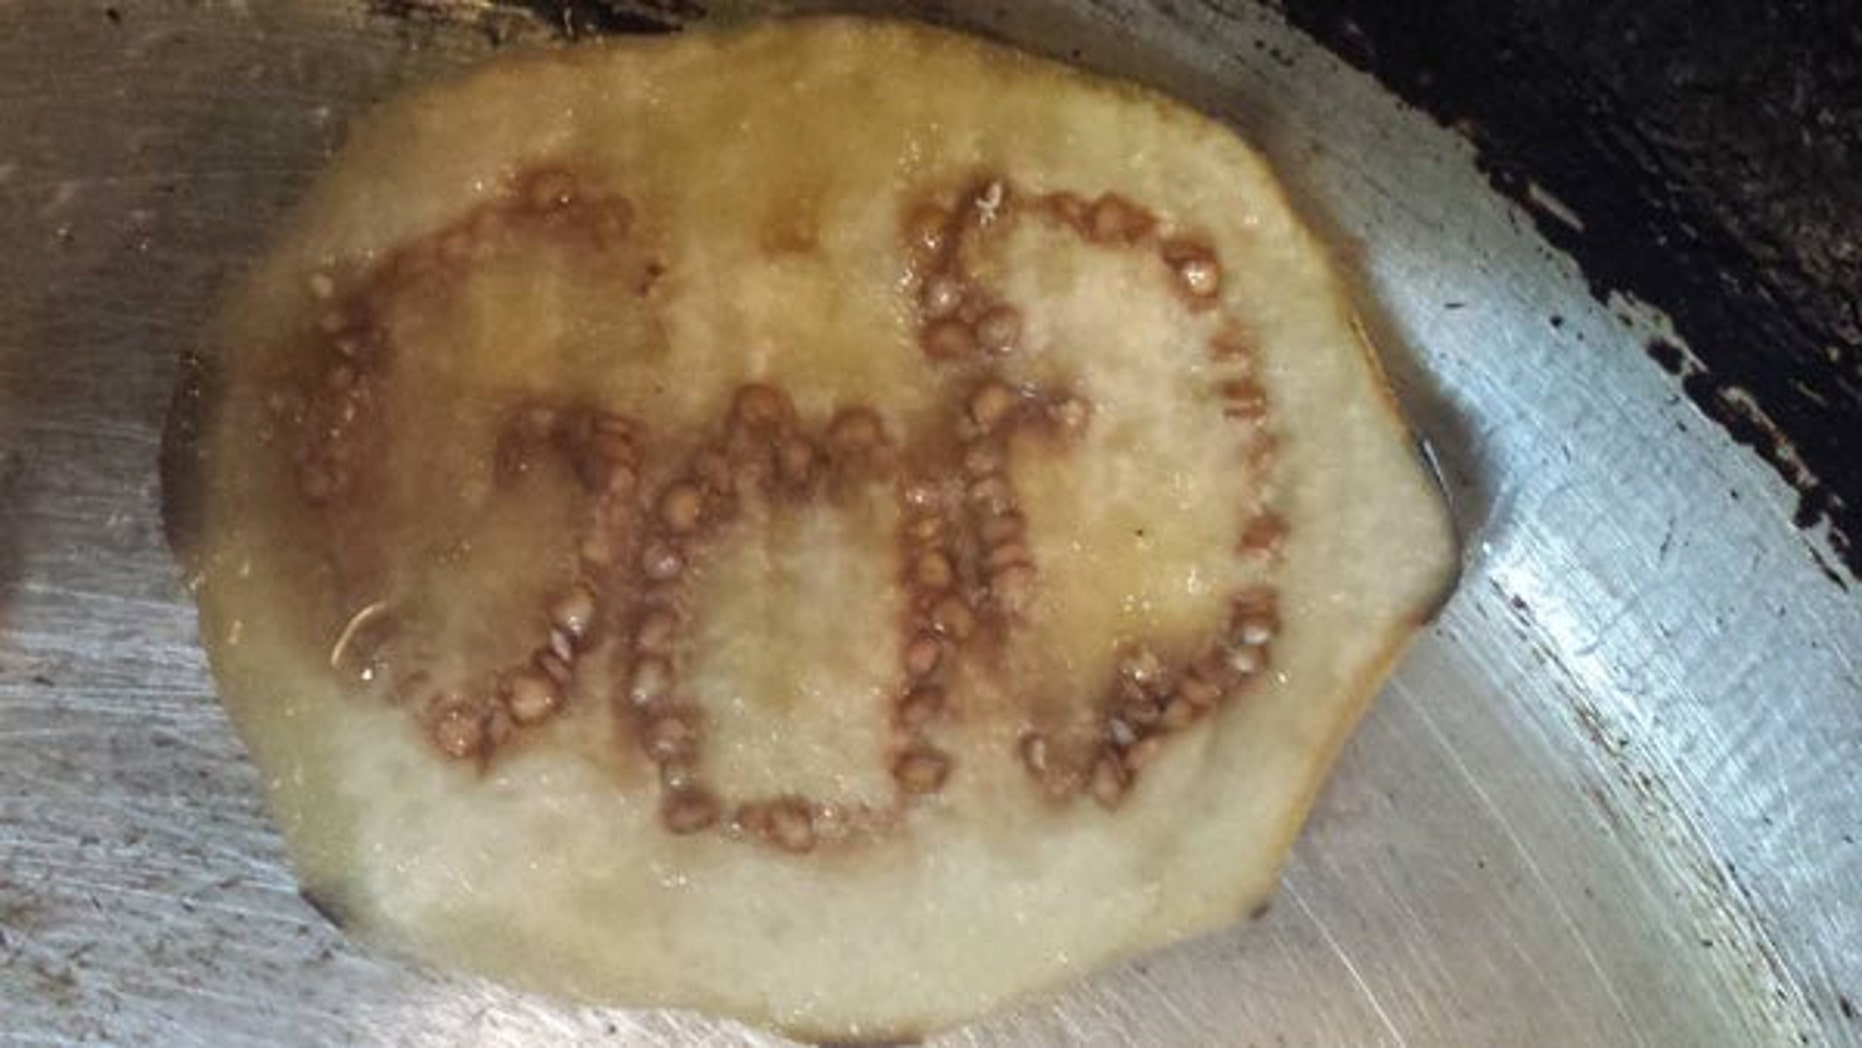 Jermarcus Brady was stunned after cutting into an eggplant to find the word GOD formed by the seeds.